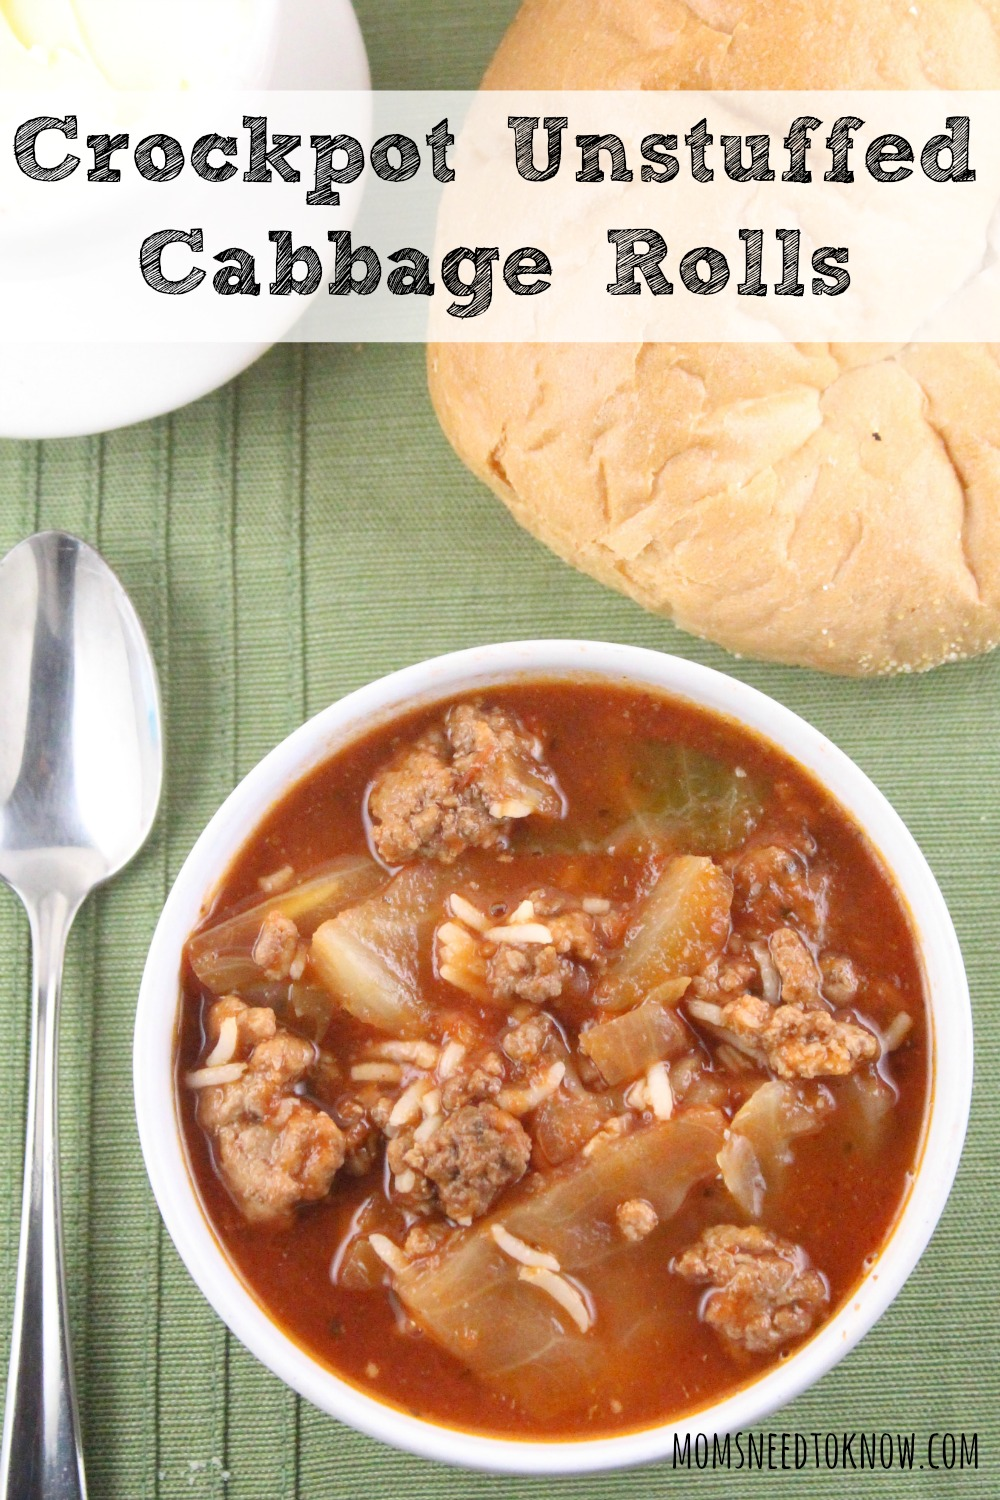 Crockpot Unstuffed Cabbage Rolls